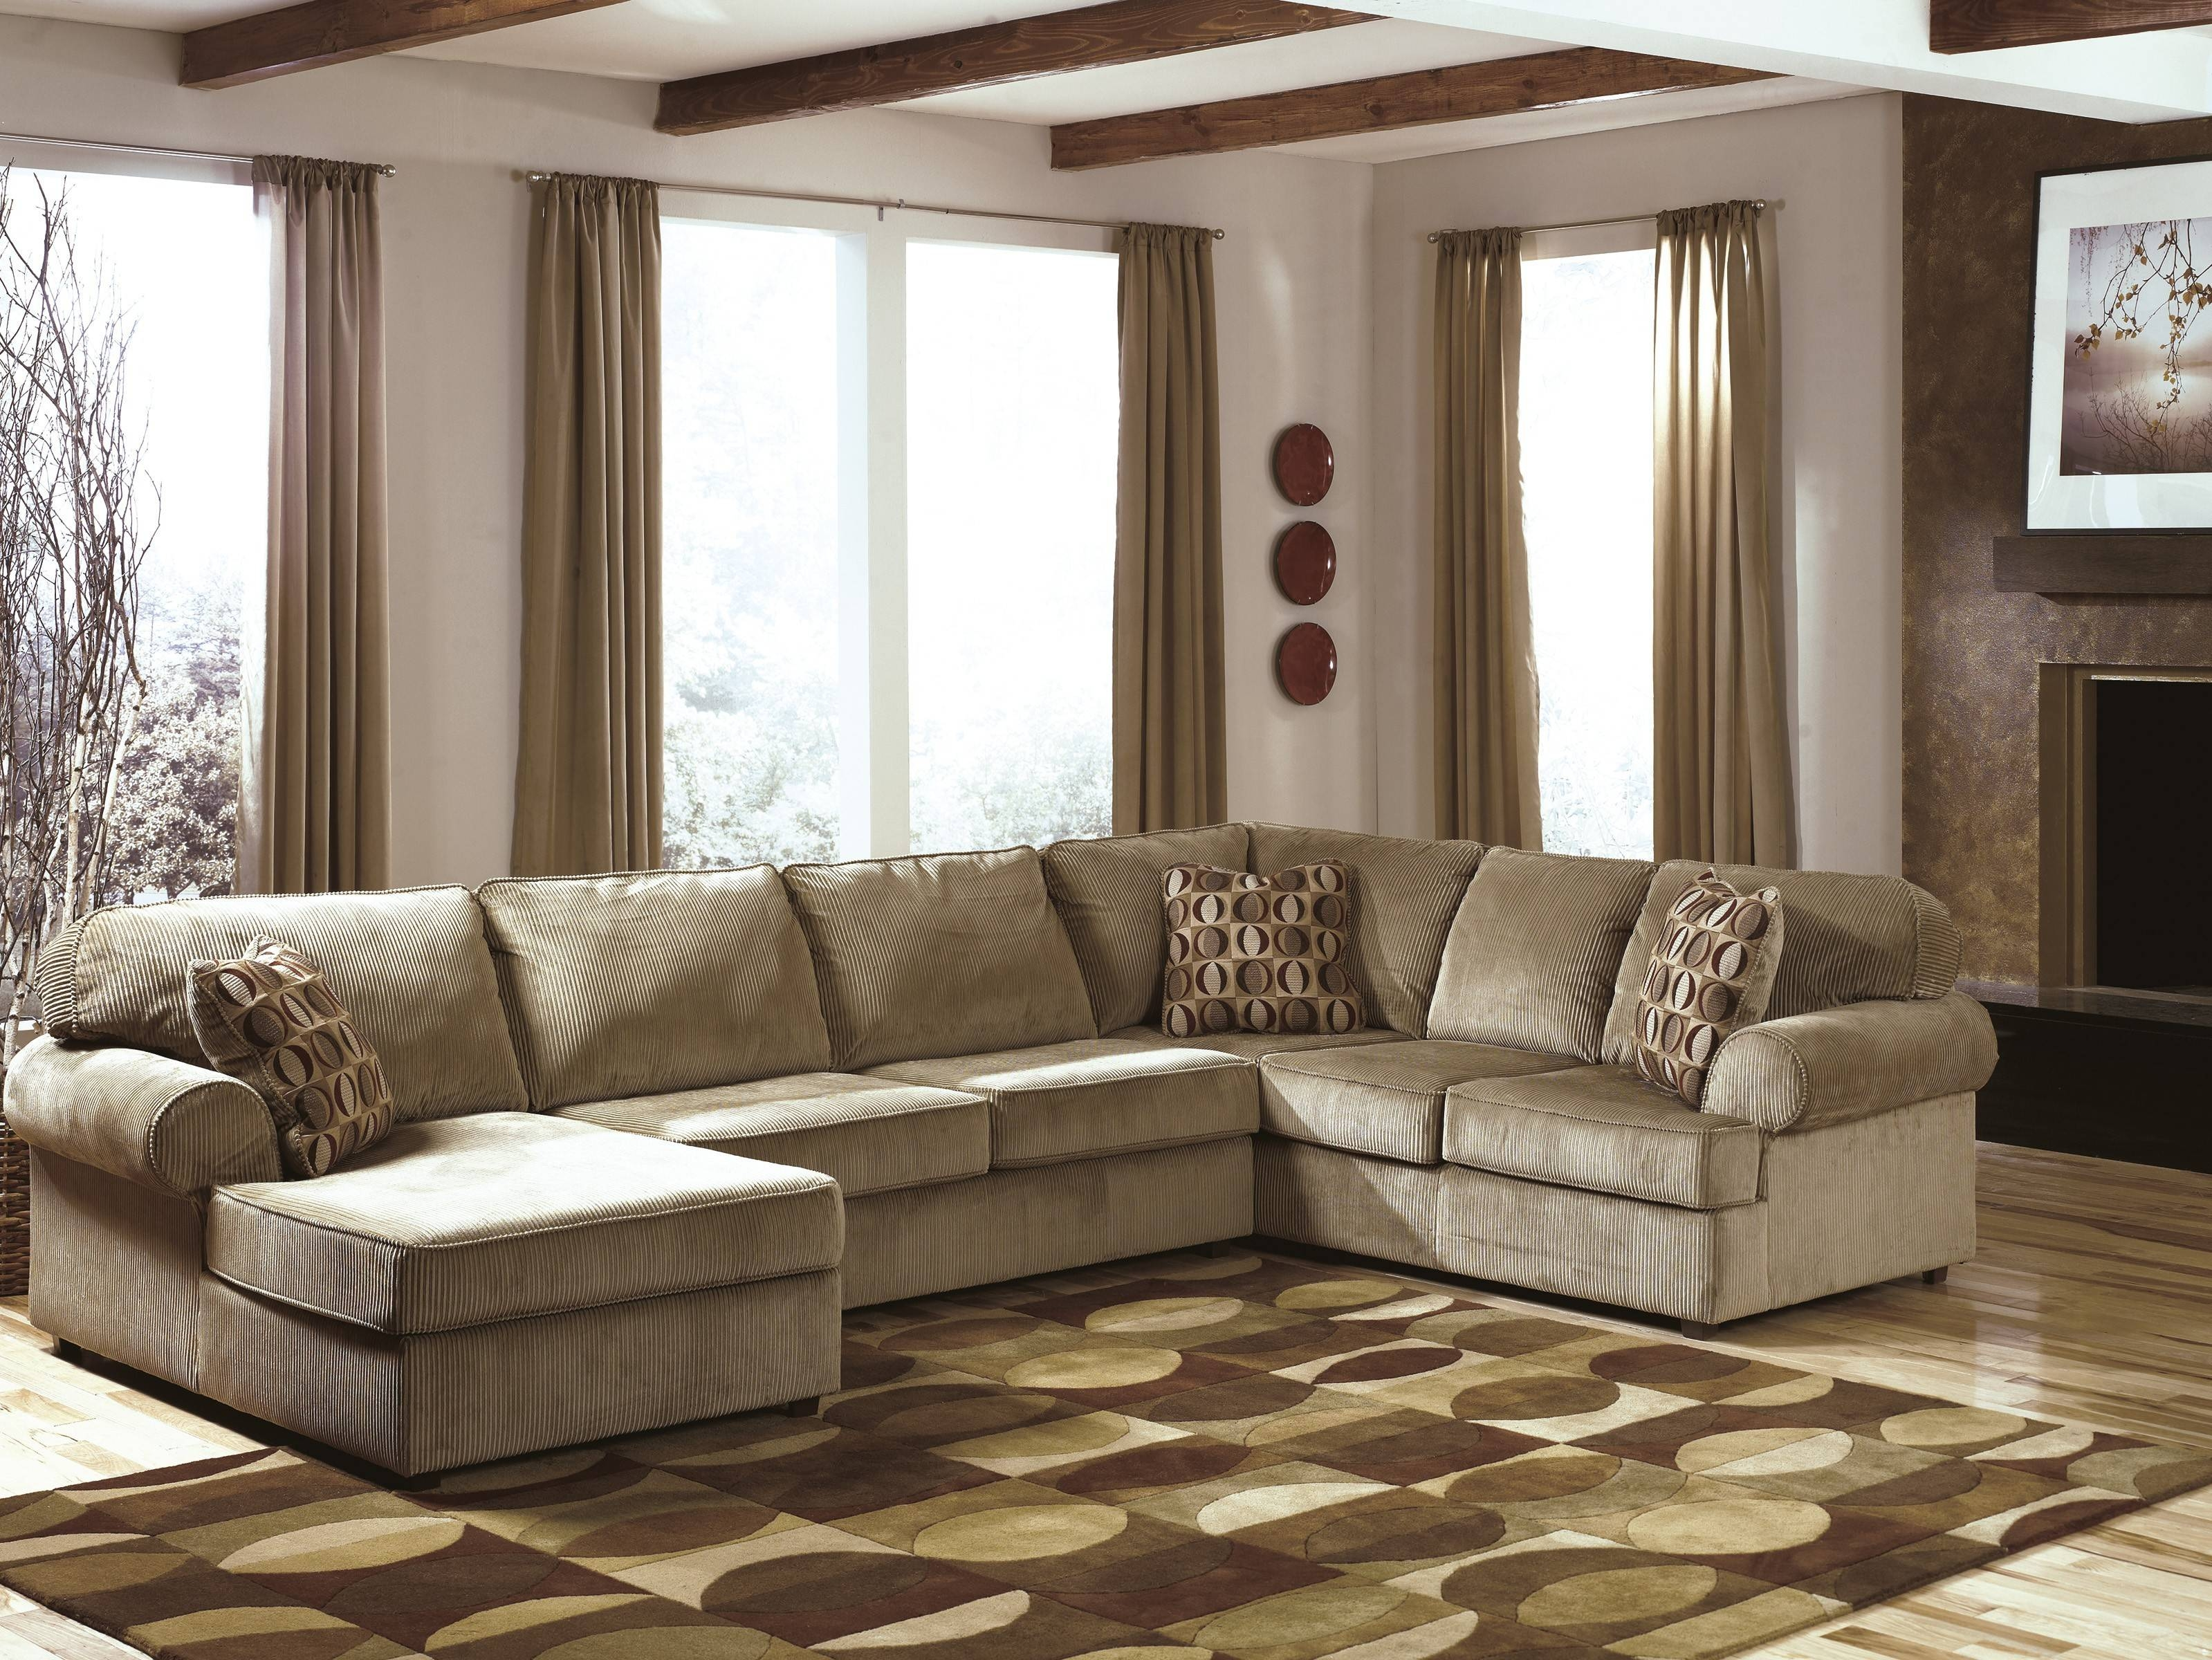 Furniture: Mesmerizing Costco Sectionals Sofa For Cozy Living Room for Cozy Sectional Sofas (Image 13 of 30)